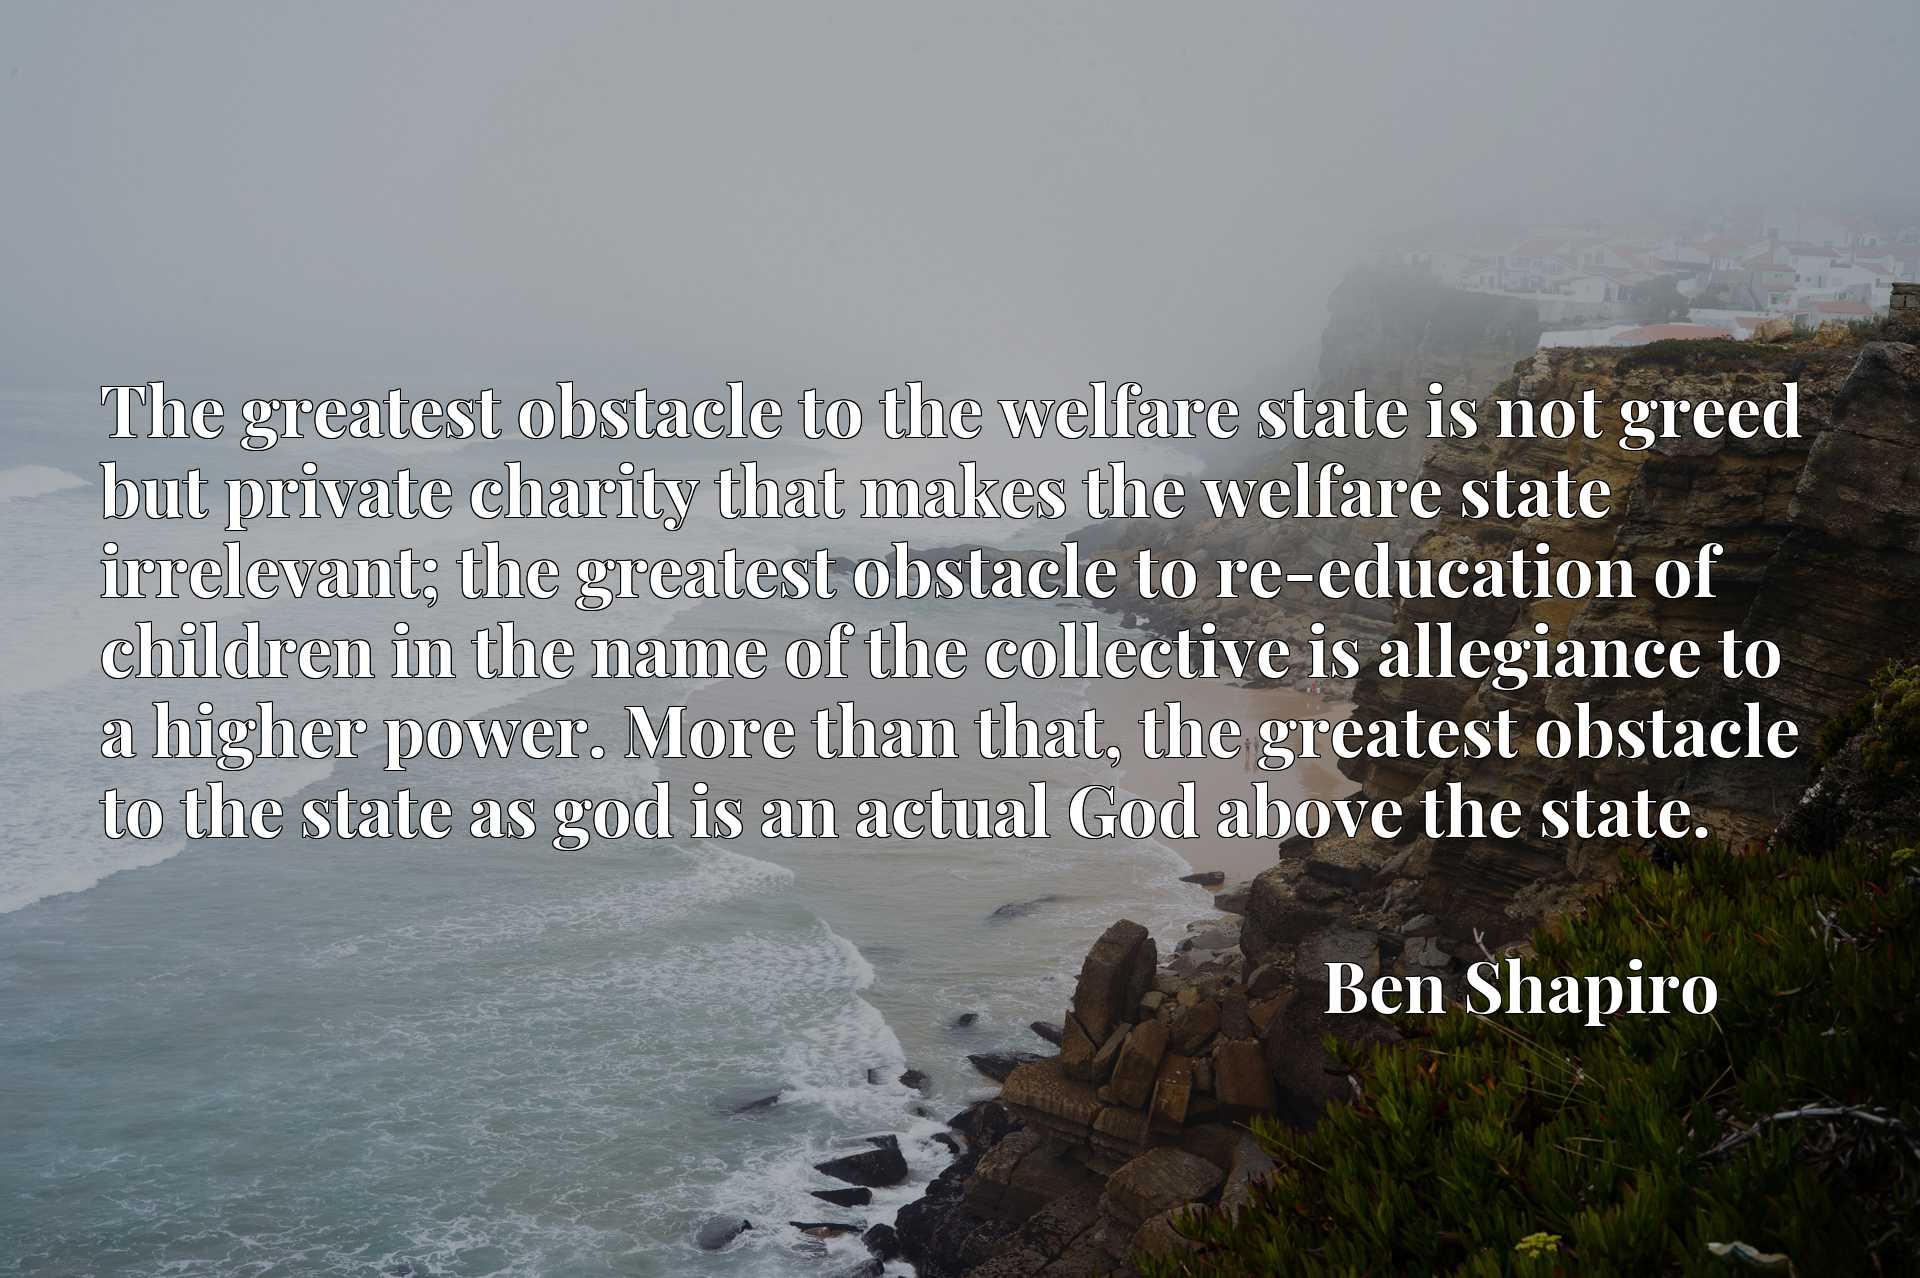 The greatest obstacle to the welfare state is not greed but private charity that makes the welfare state irrelevant; the greatest obstacle to re-education of children in the name of the collective is allegiance to a higher power. More than that, the greatest obstacle to the state as god is an actual God above the state.